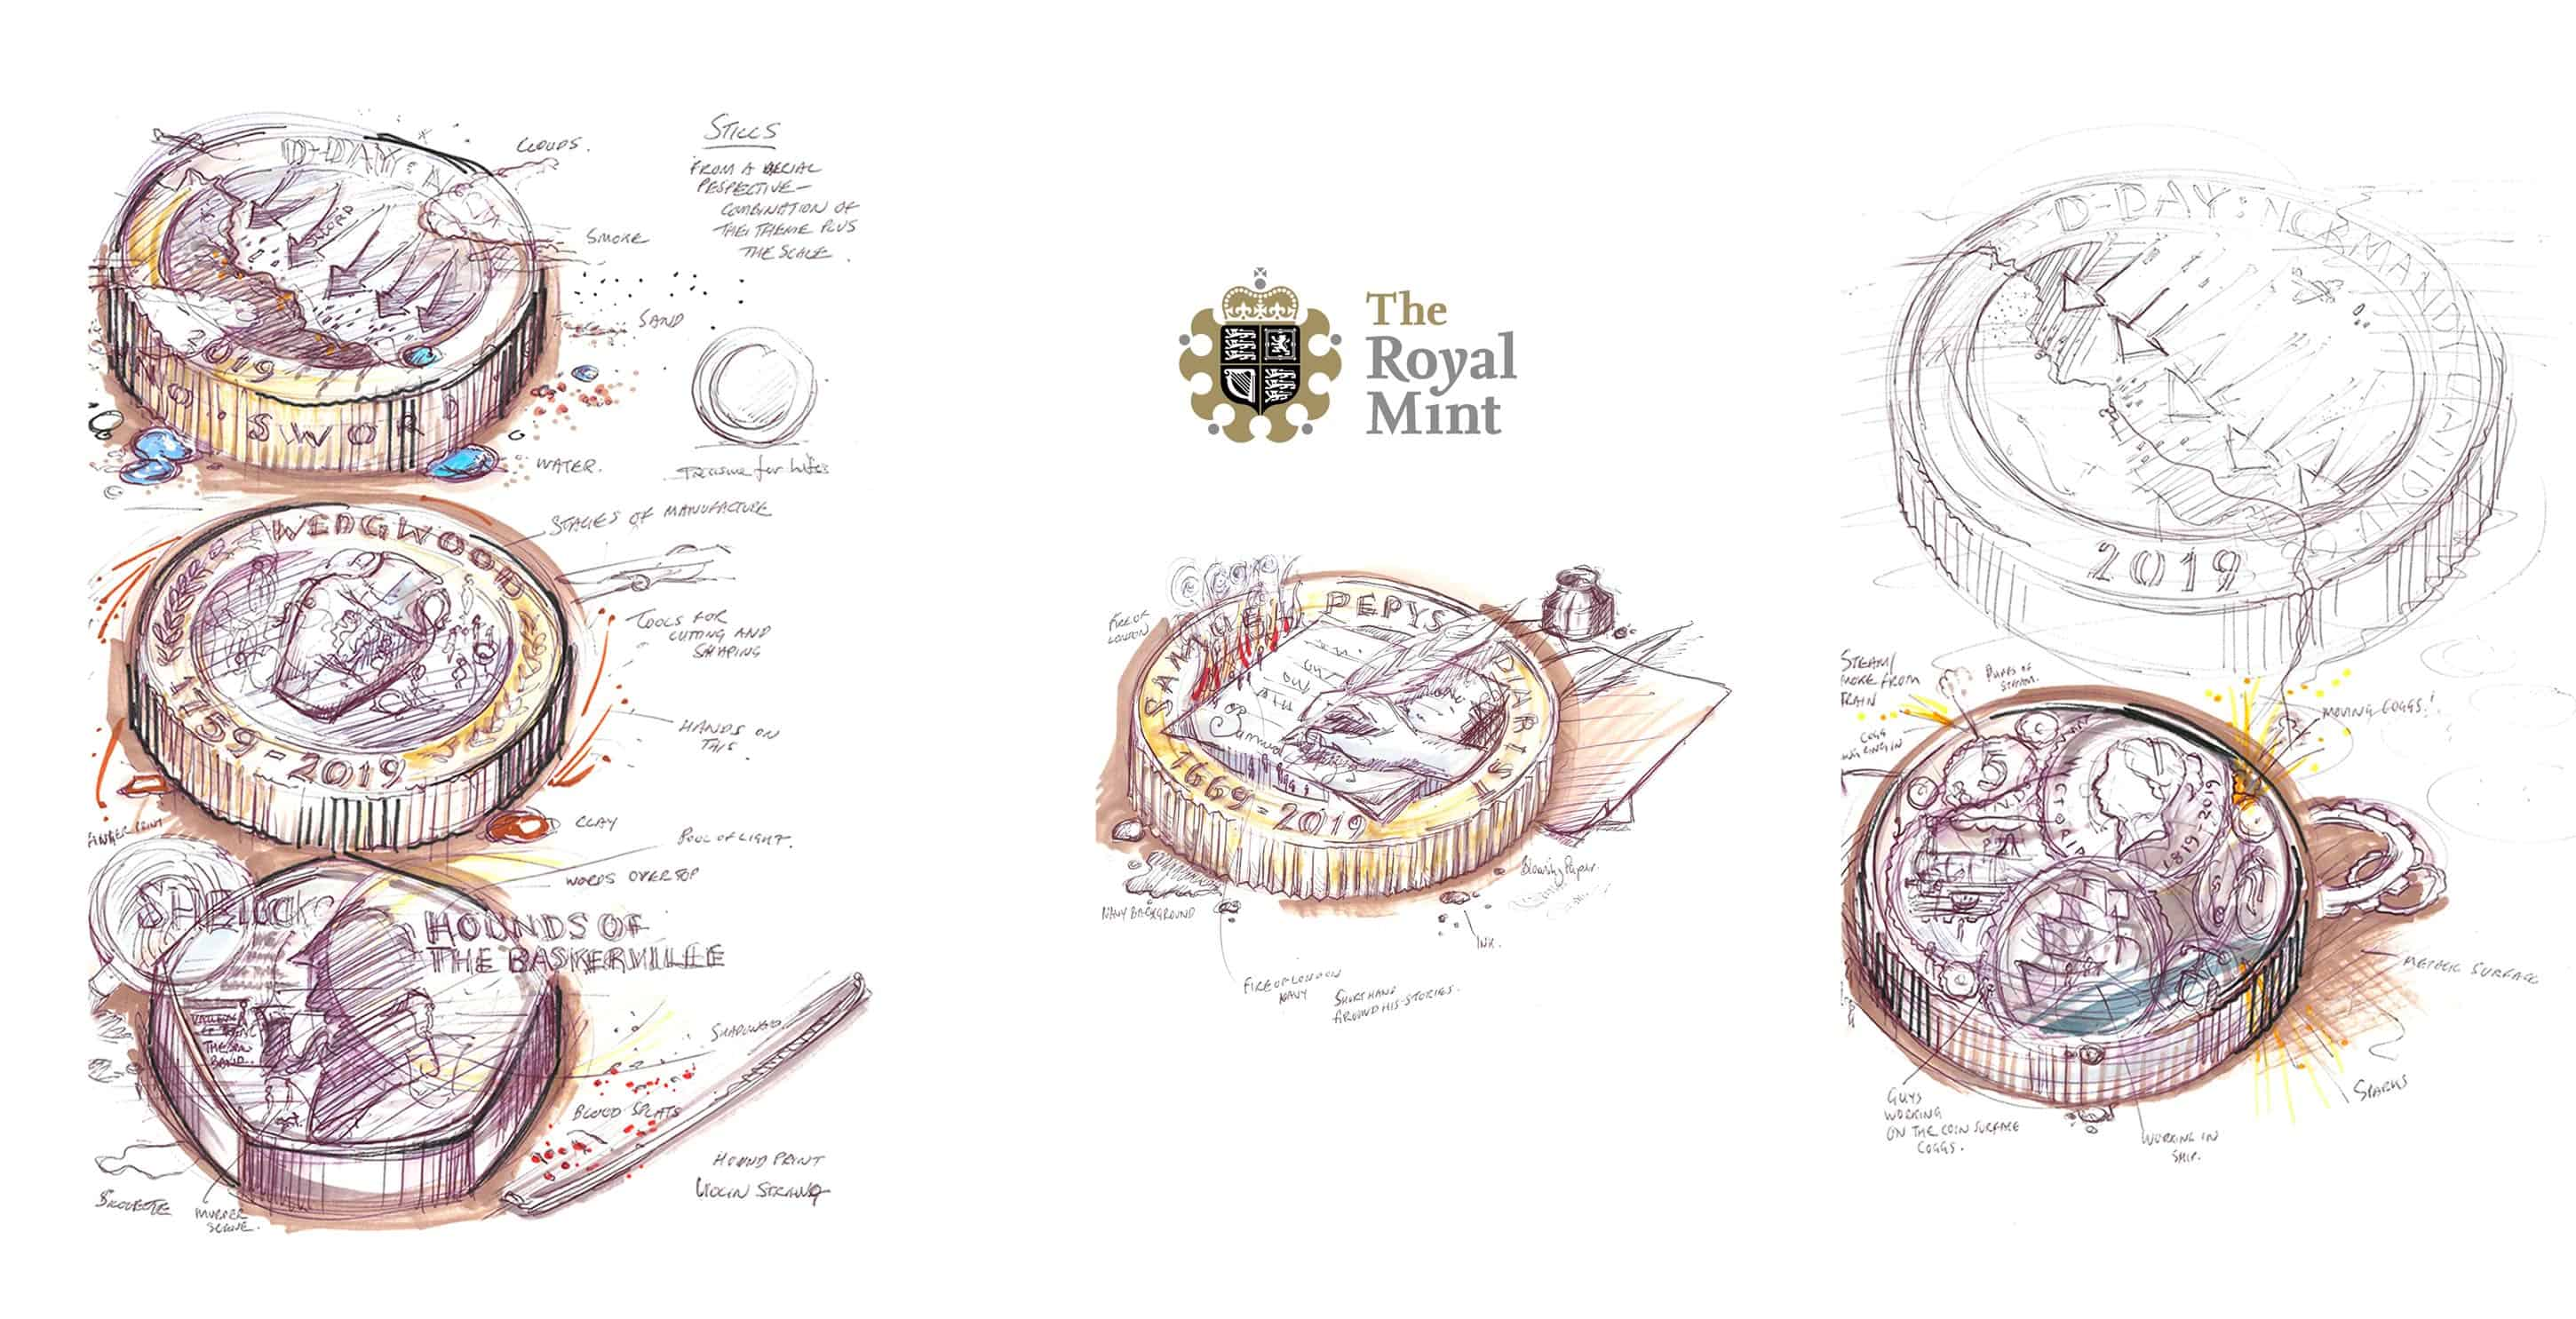 Monumental Stories in Miniature sketches